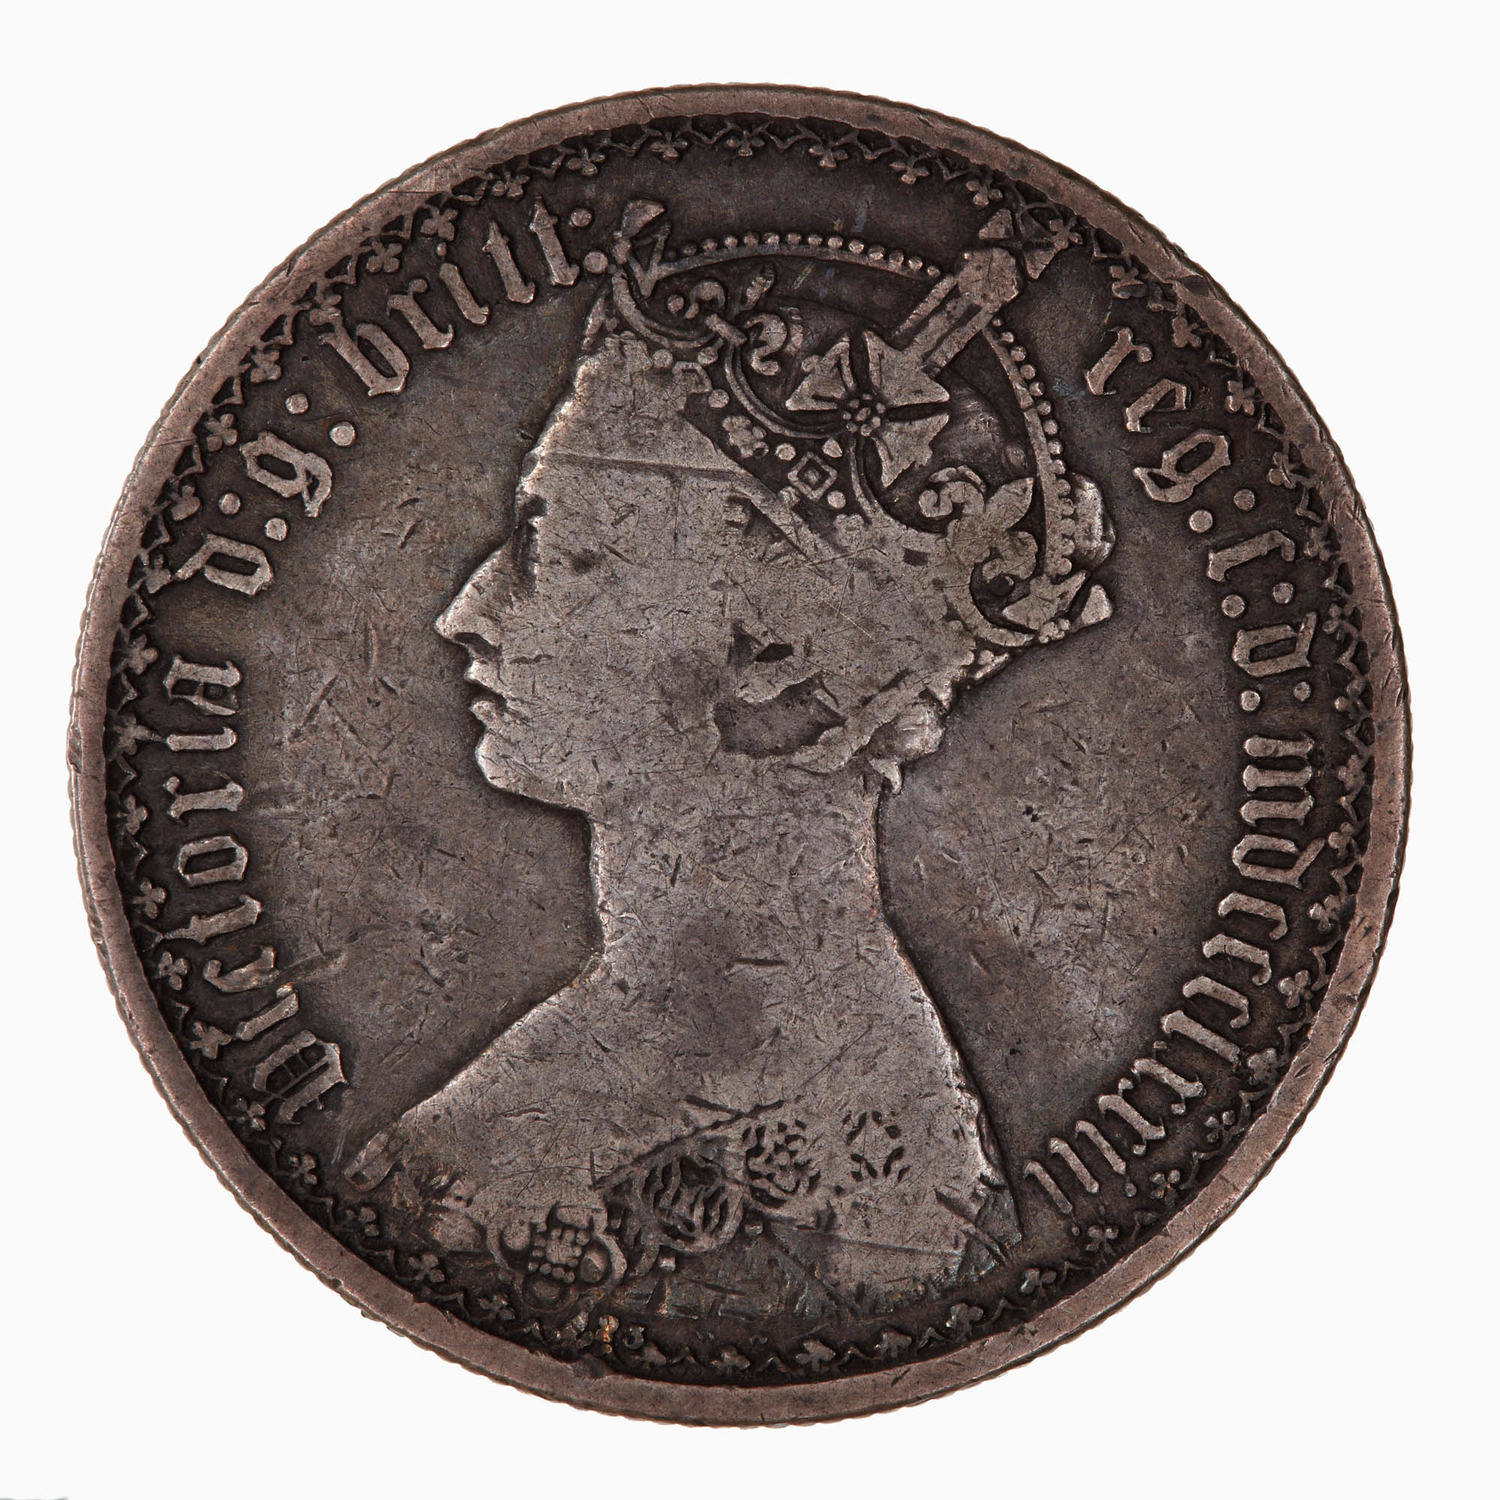 Florin 1873: Photo Coin - Florin, Queen Victoria, Great Britain, 1873